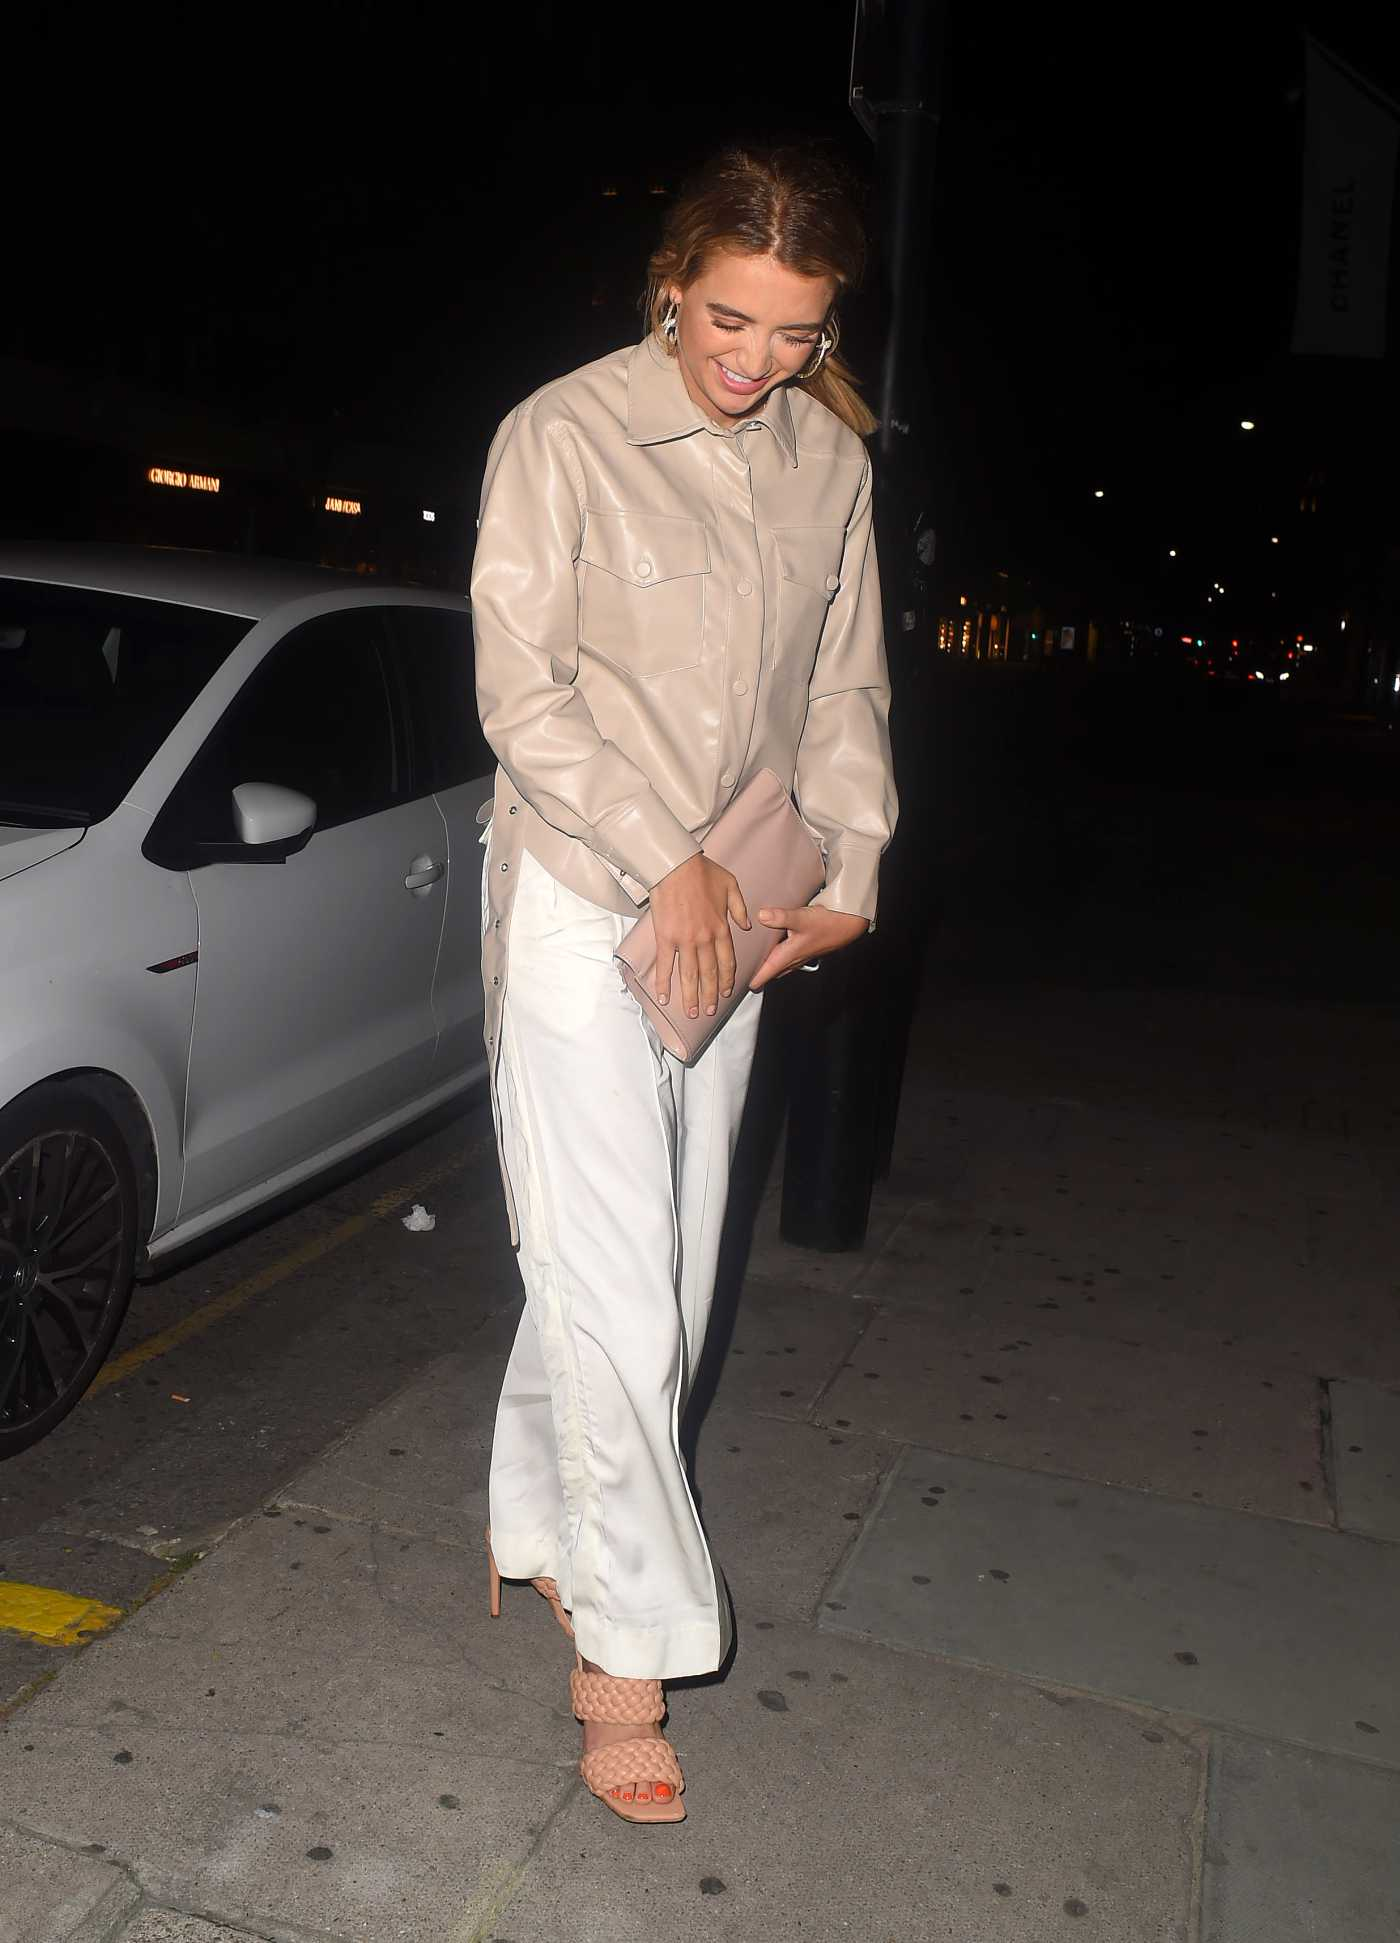 Georgia Harrison in a White Pants Was Seen Out with Theo Campbell in London 08/20/2020